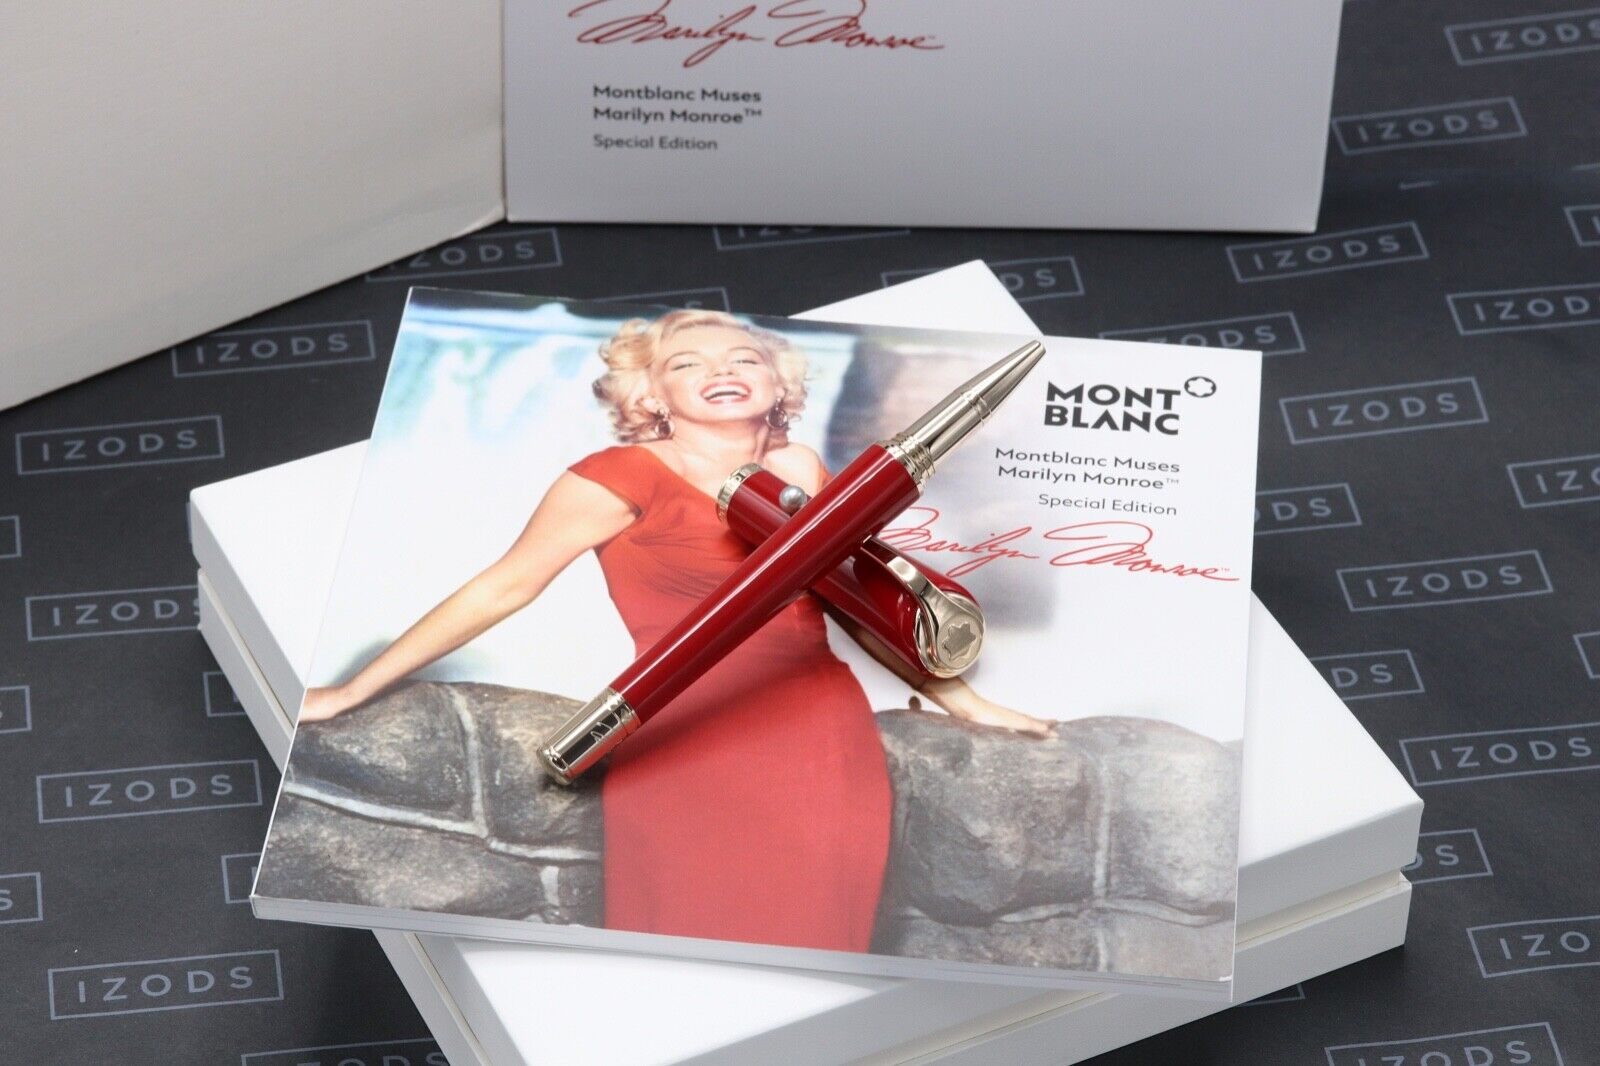 Montblanc Muses Edition Marilyn Monroe Special Edition Rollerball Pen - UNUSED